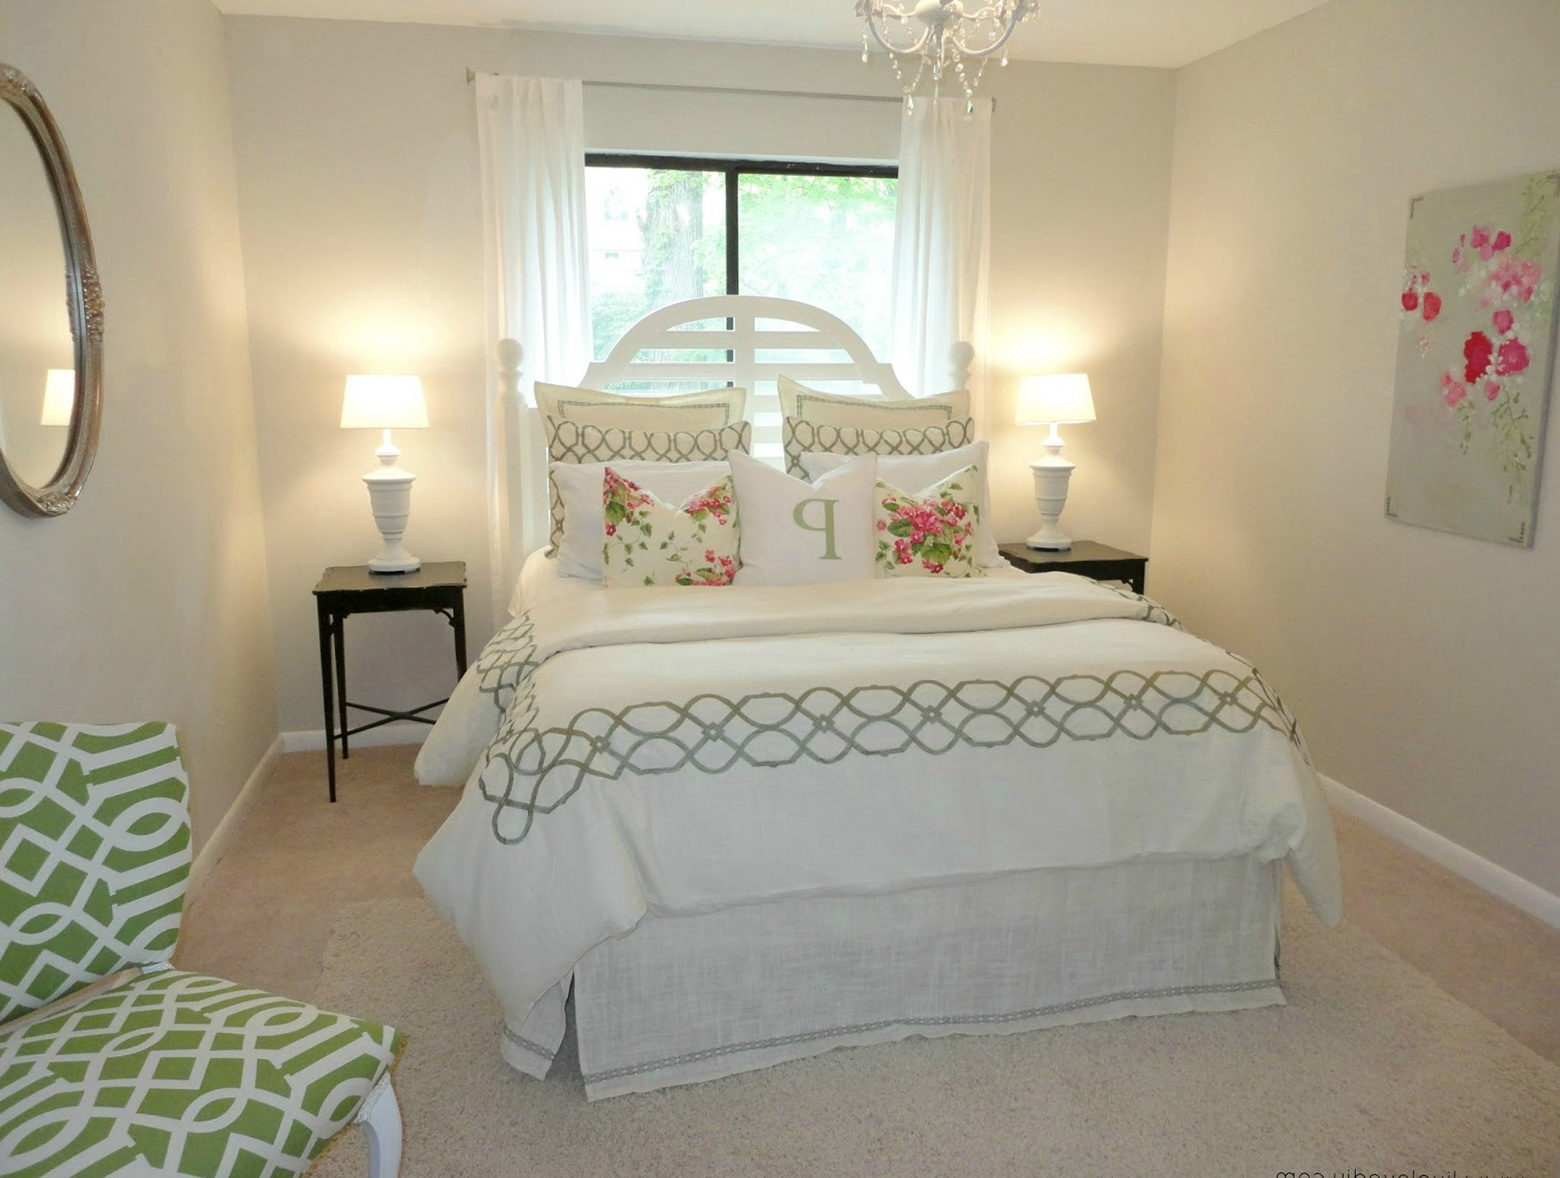 Guest Bedroom Ideas Daybed Beds 21929 Home Design Ideas